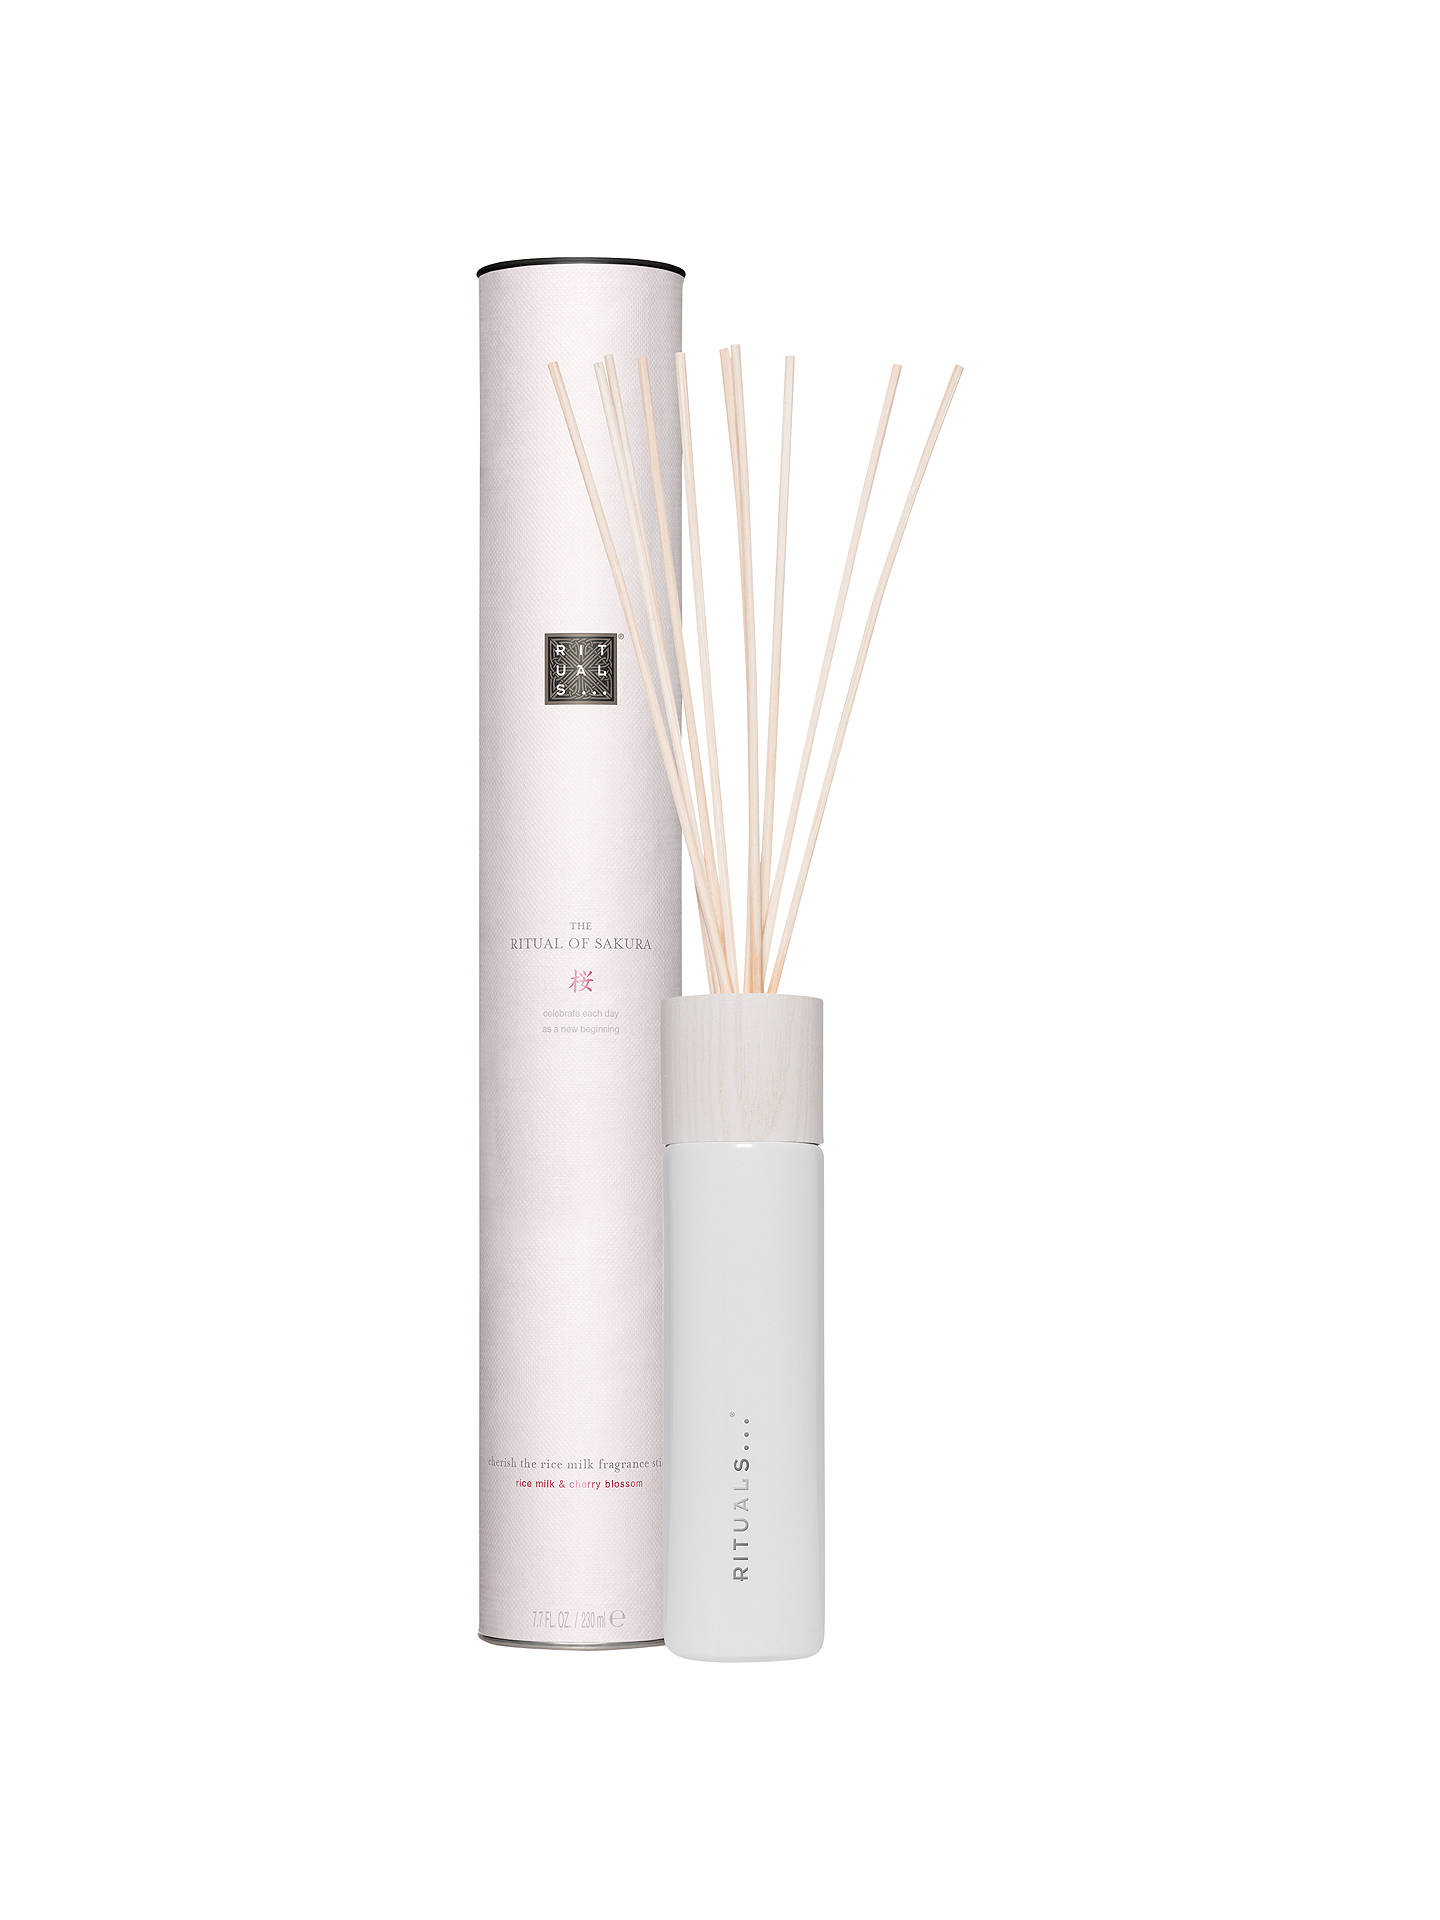 Rituals The Ritual of Sakura Fragrance Sticks, 230ml